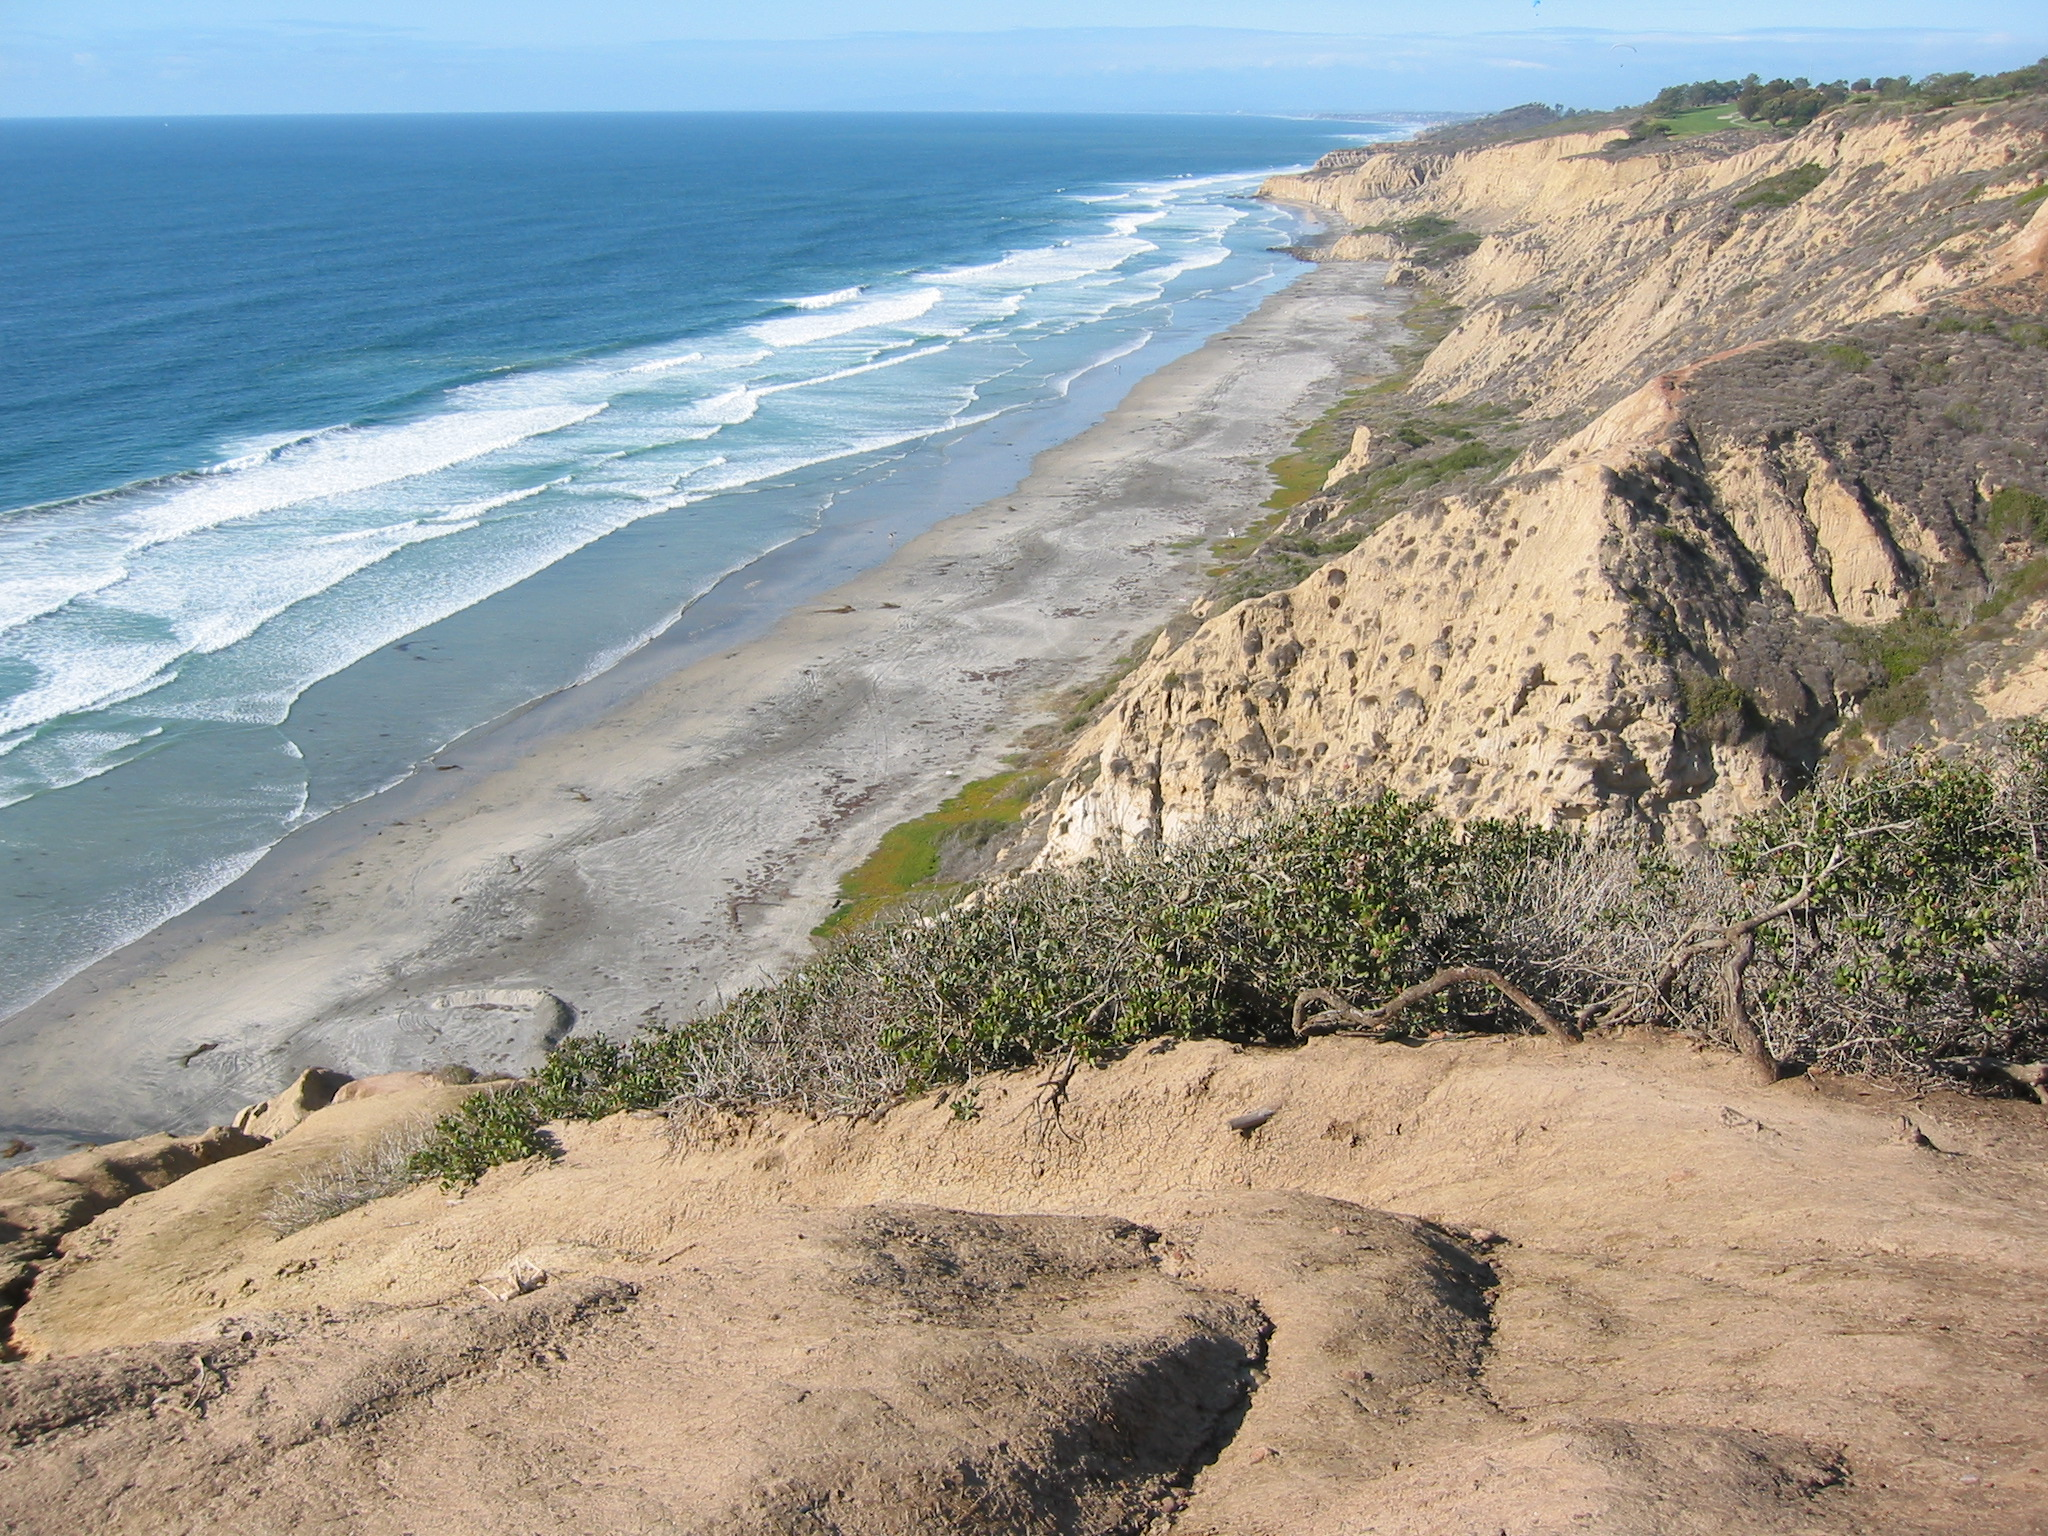 The view of San Diego's gay-popular and clothing-optional Blacks Beach, from the top of the trailhead